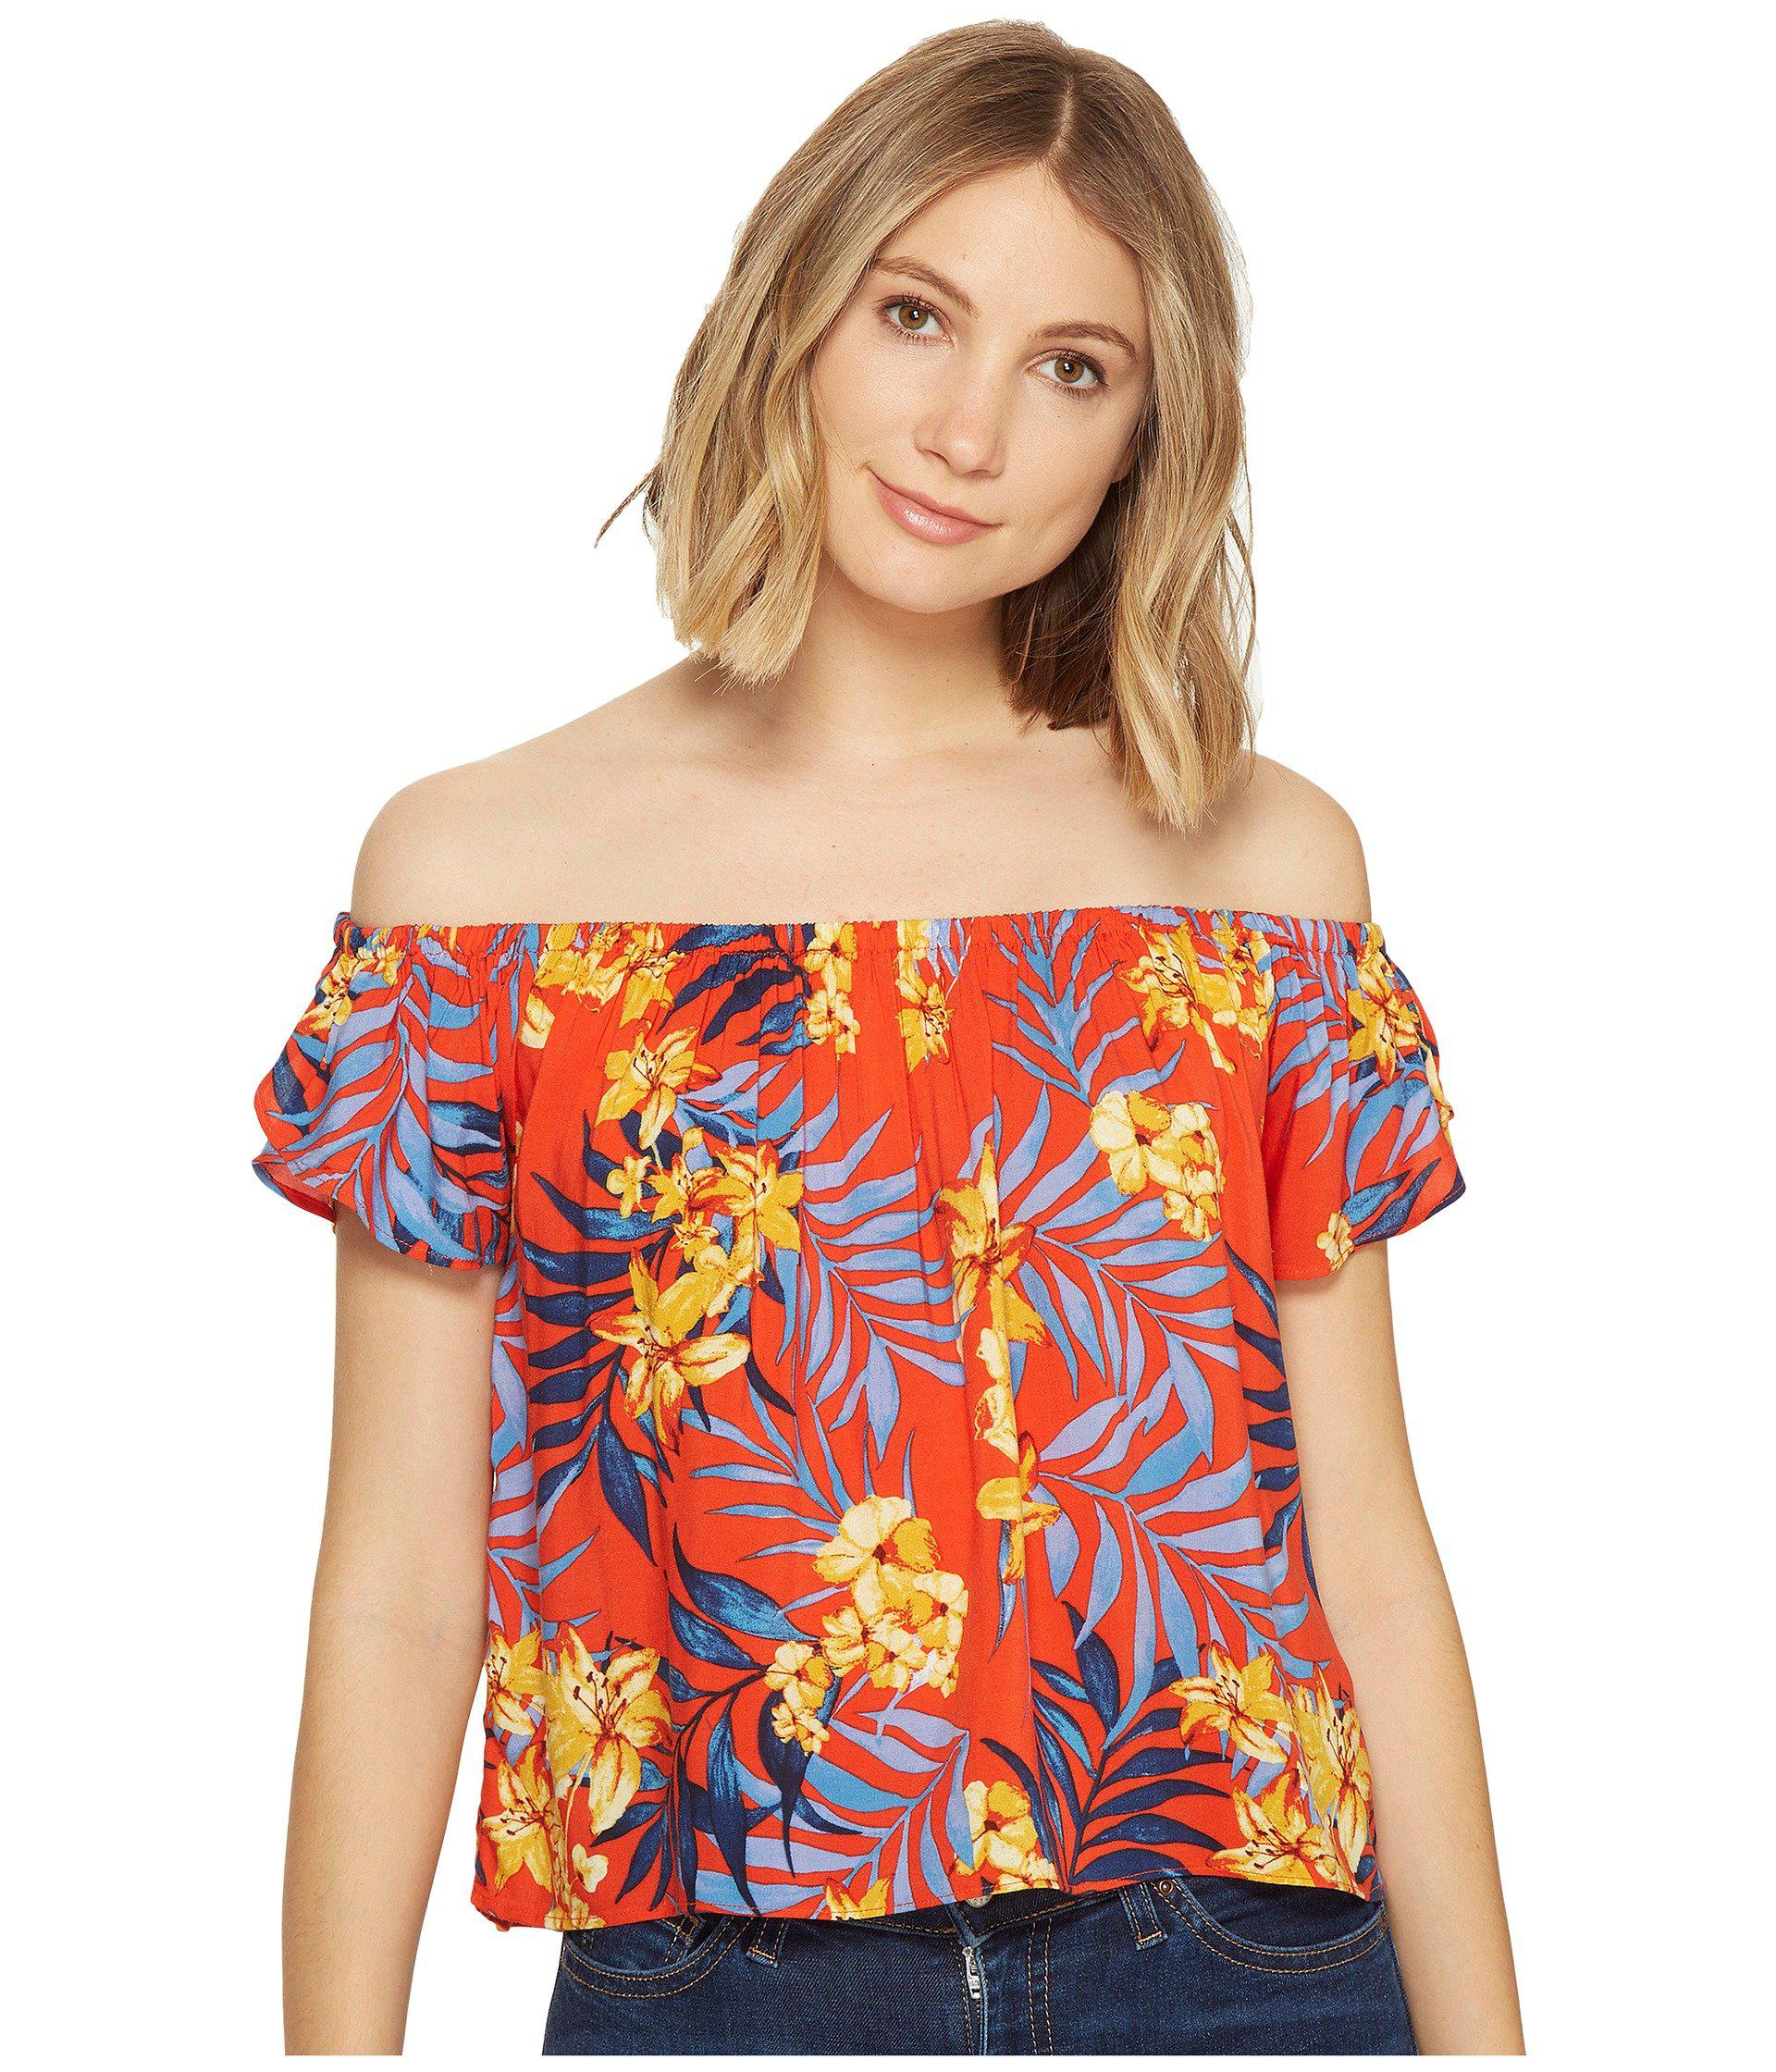 581bd103c32 Lyst - Rip Curl Tropicana Off The Shoulder Top in Red - Save 50%